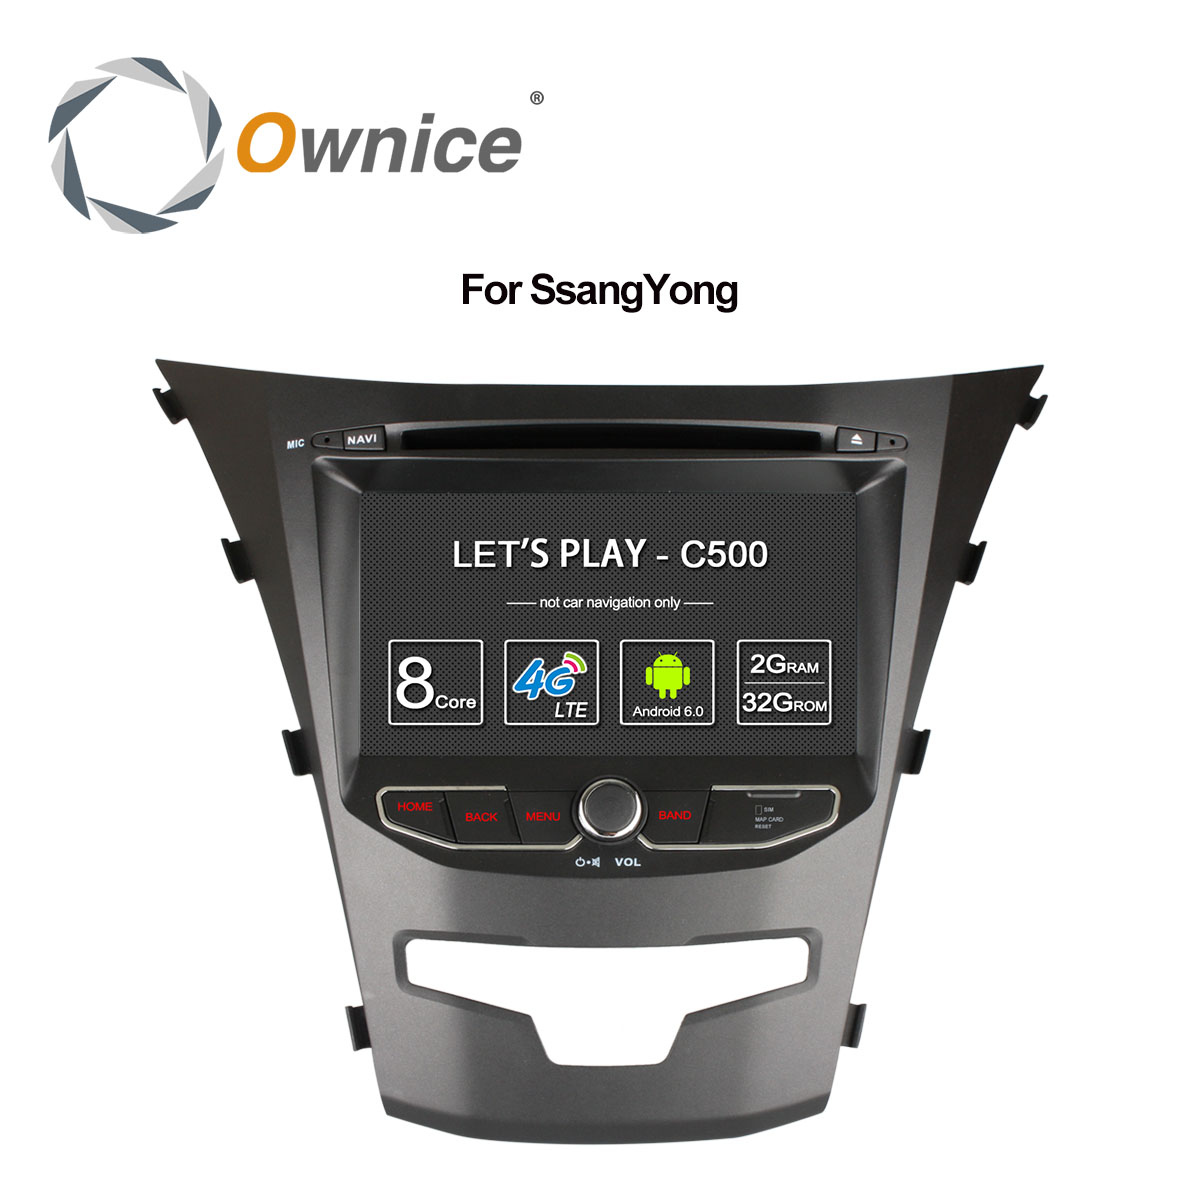 Ownice C500 Octa 8 Core android 6.0 for ssangyong actyon 2014 korando Quad Core support 4G SIM LTE Network DAB+ 2GB RAM 32GB ROM ownice c500 4g sim lte octa 8 core android 6 0 for kia ceed 2013 2015 car dvd player gps navi radio wifi 4g bt 2gb ram 32g rom